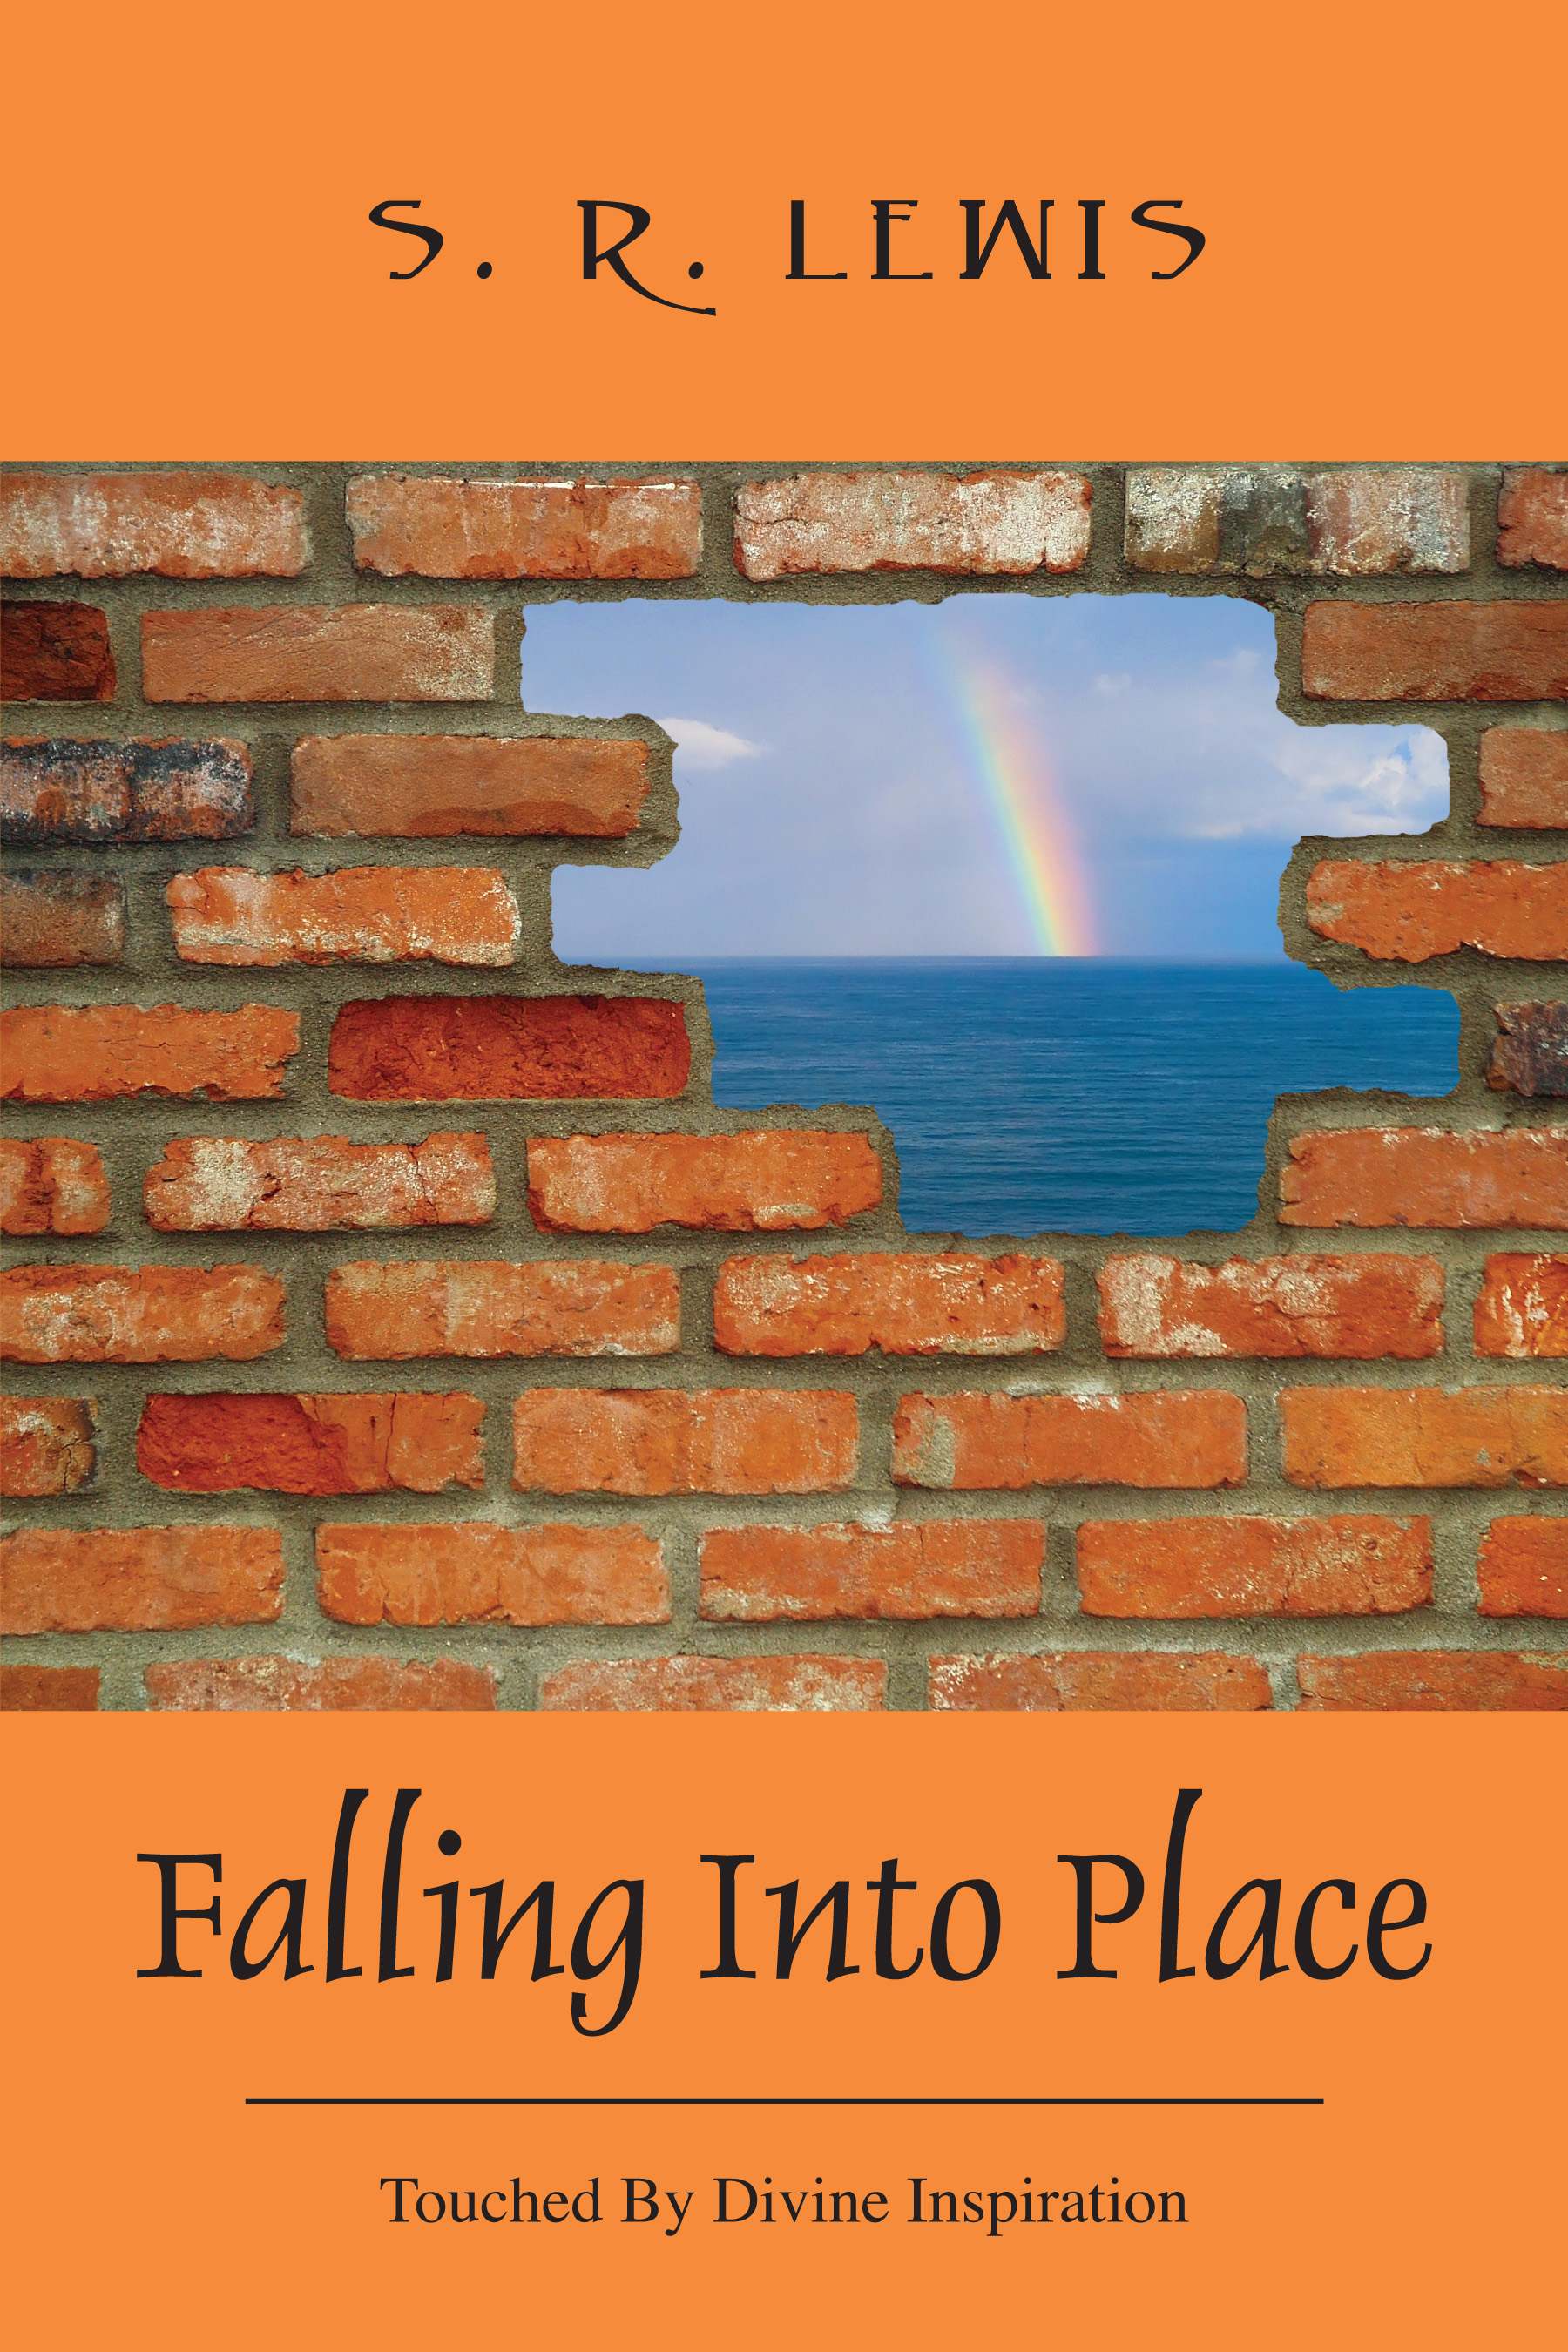 Falling Into Place- Touched by Divine Inspiration